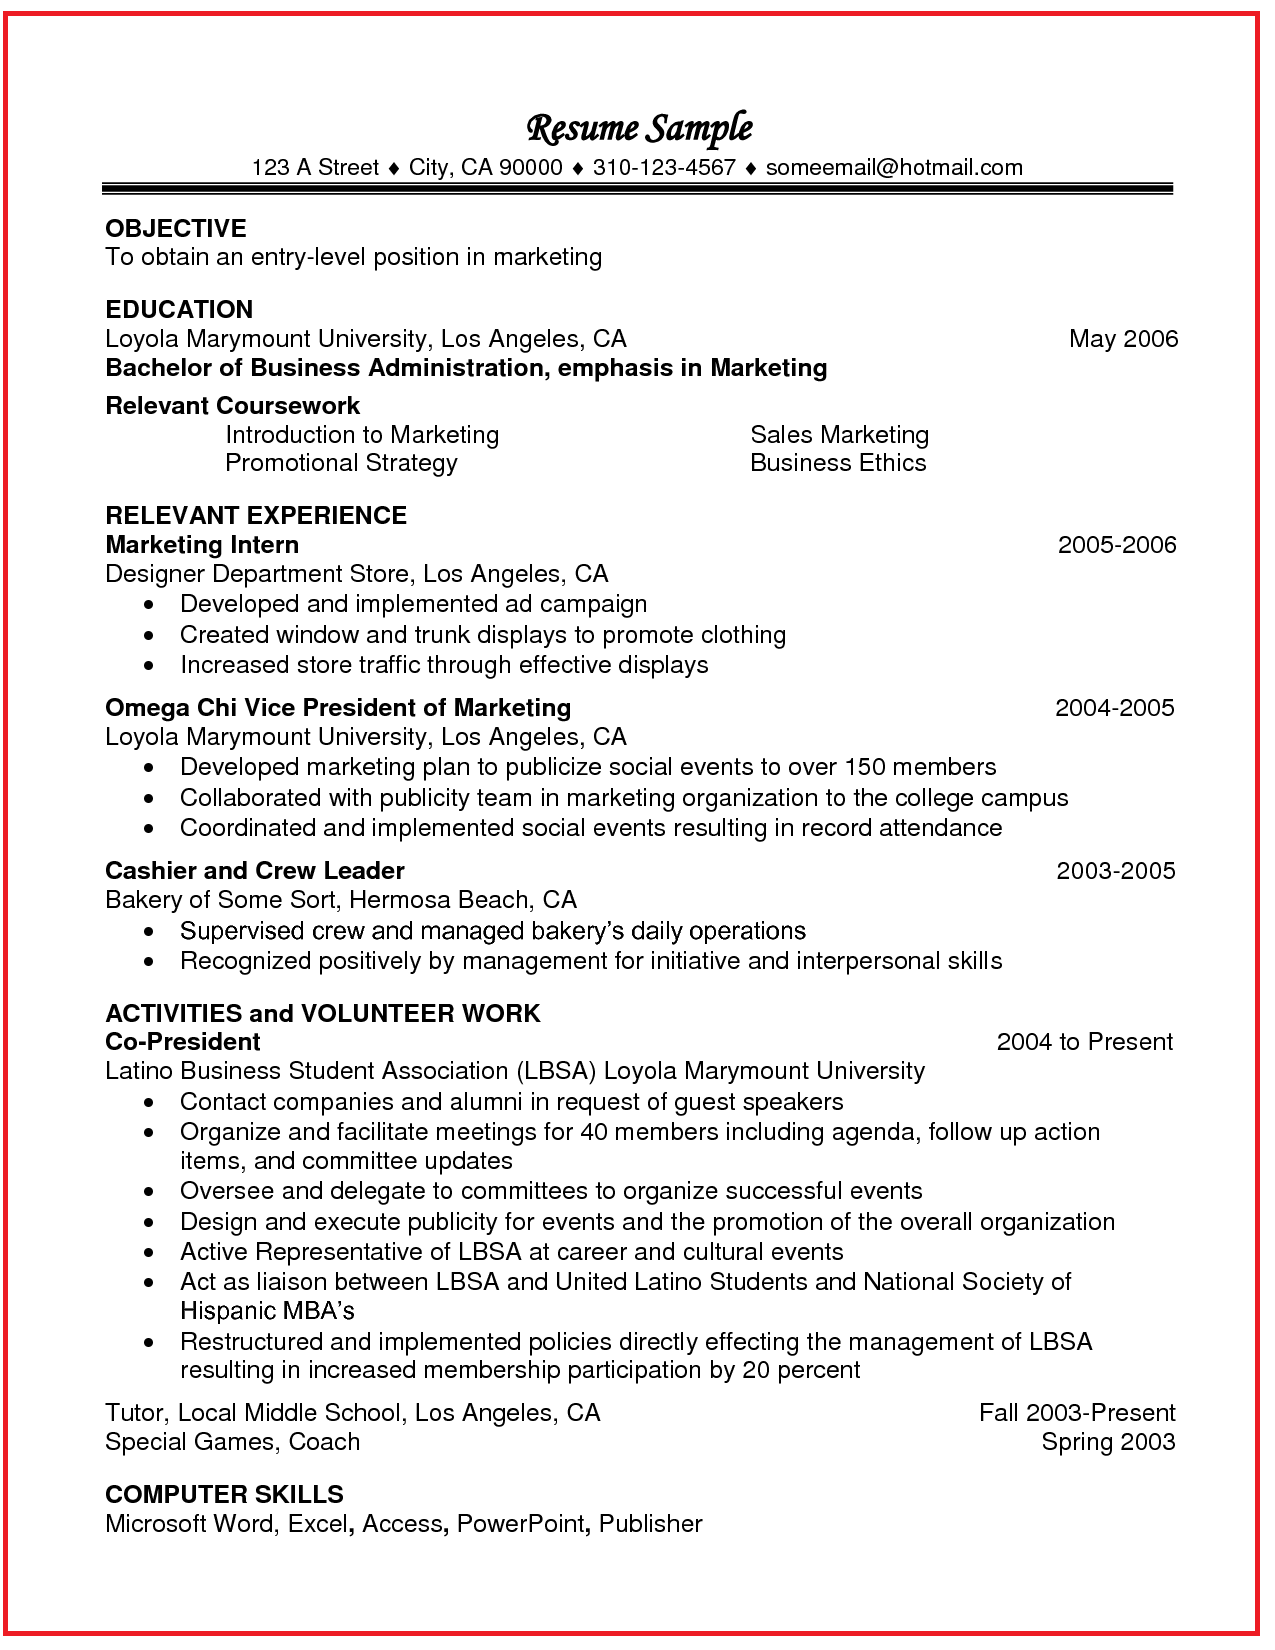 Resume Format Microsoft Word Glamorous Relevant Coursework In Resume Example  Httpwwwjobresume Decorating Design